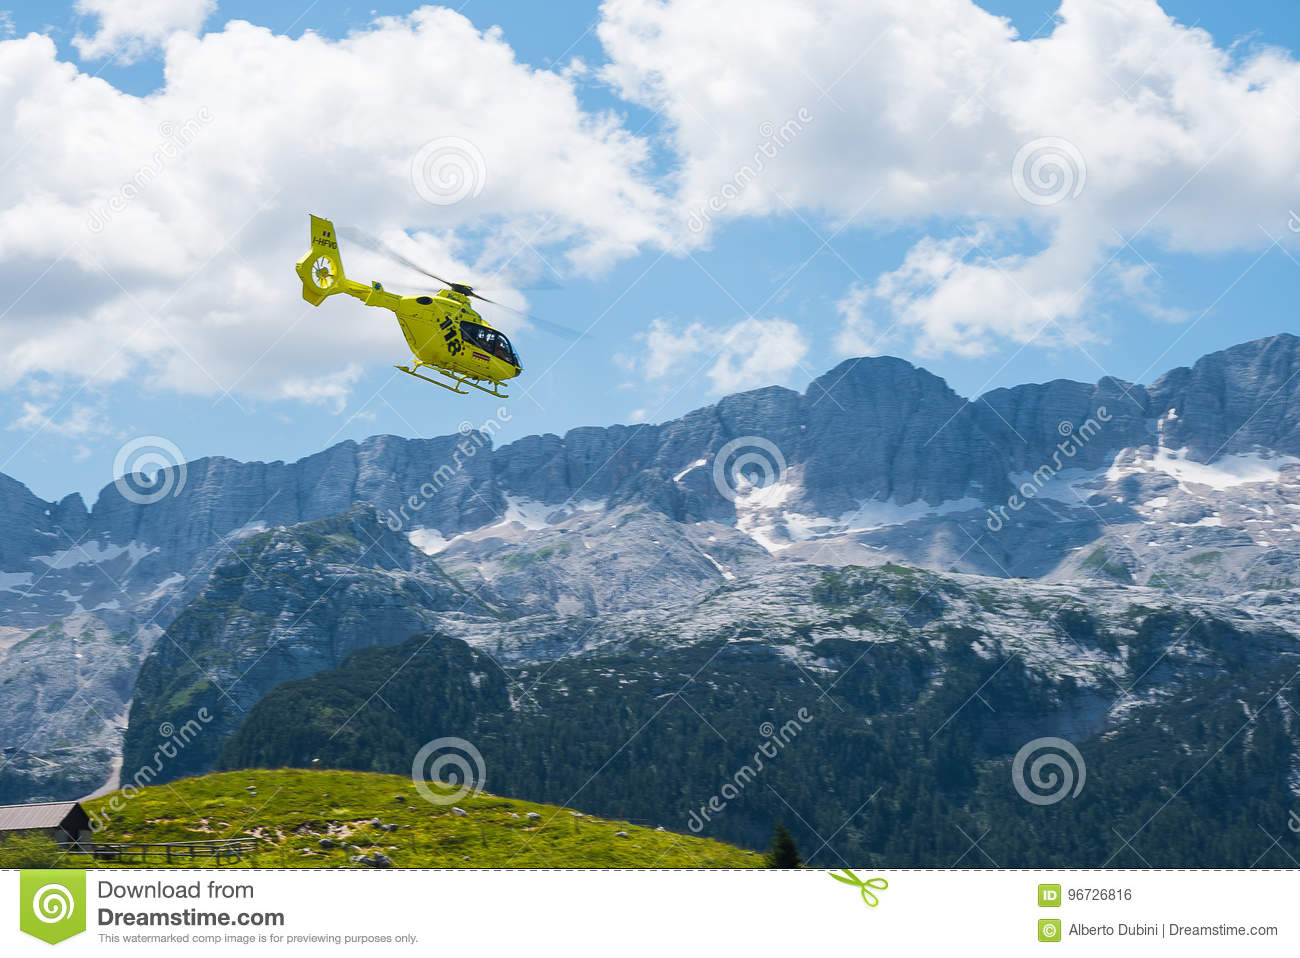 Emergency helicopter hovering over the mountains